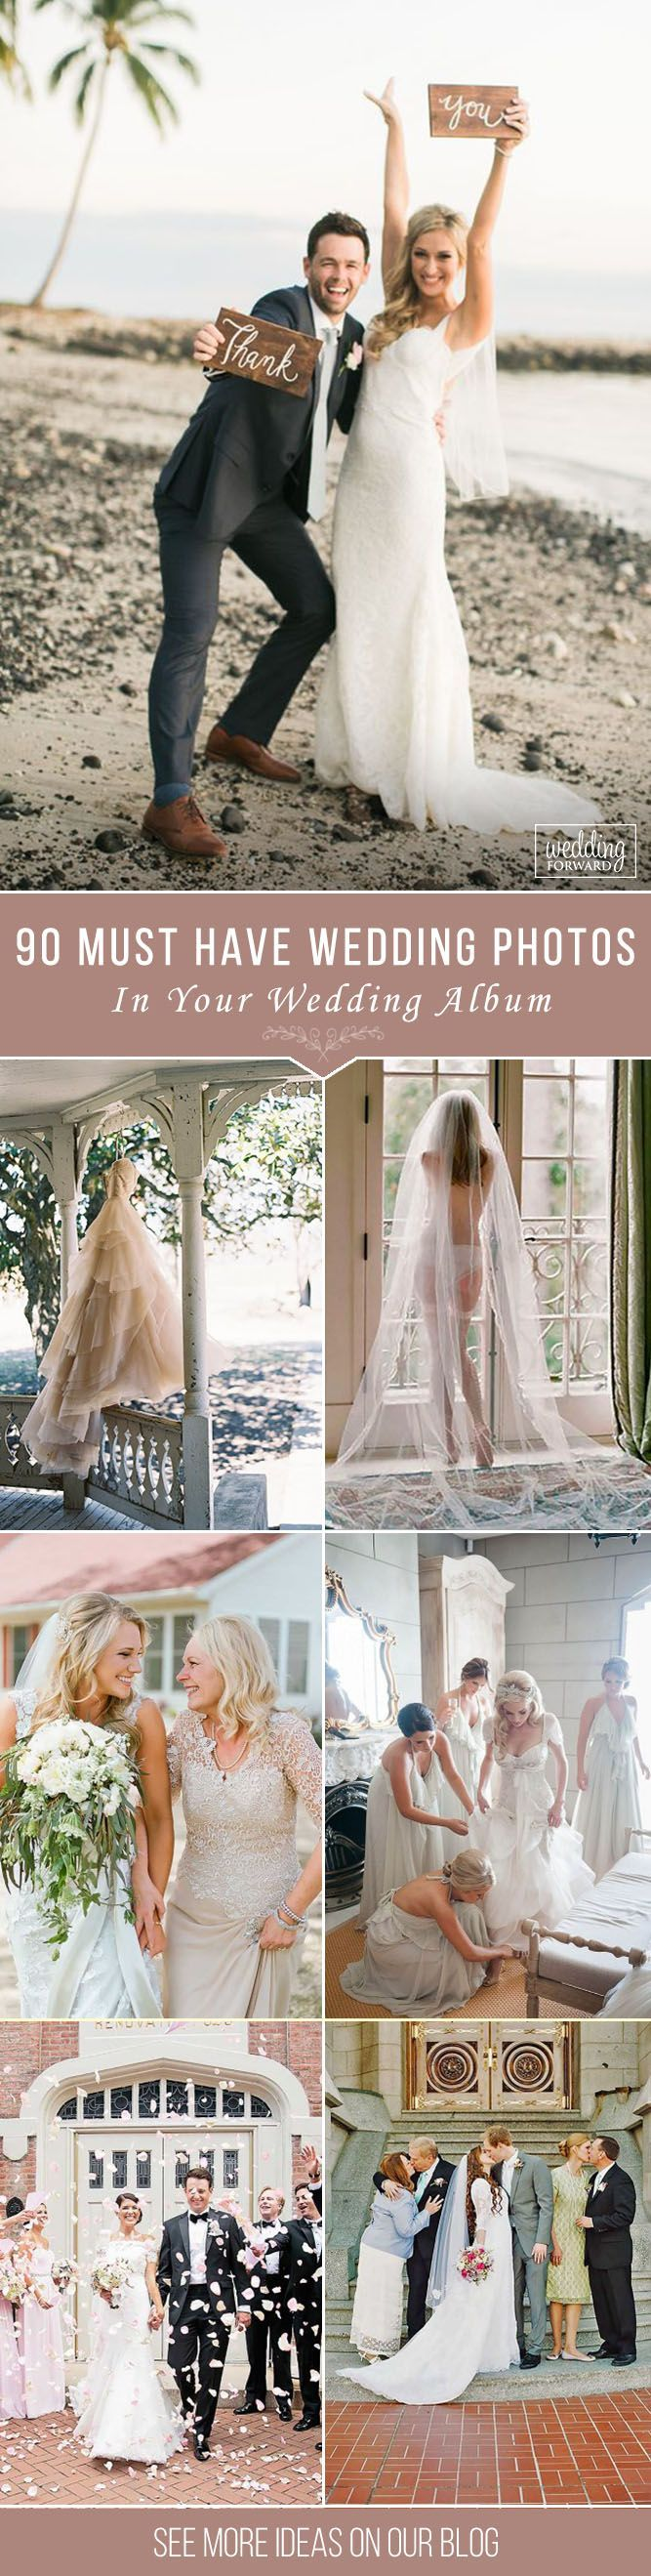 Must Have Wedding Photos In Your Album ❤ Fanny, beautiful, charming, touching moments. Take a look of wedding photos we collected for you from all over the Pinterest to help organize the best ideas. See more: http://www.weddingforward.com/wedding-photos-album/ ‎#wedding #photography